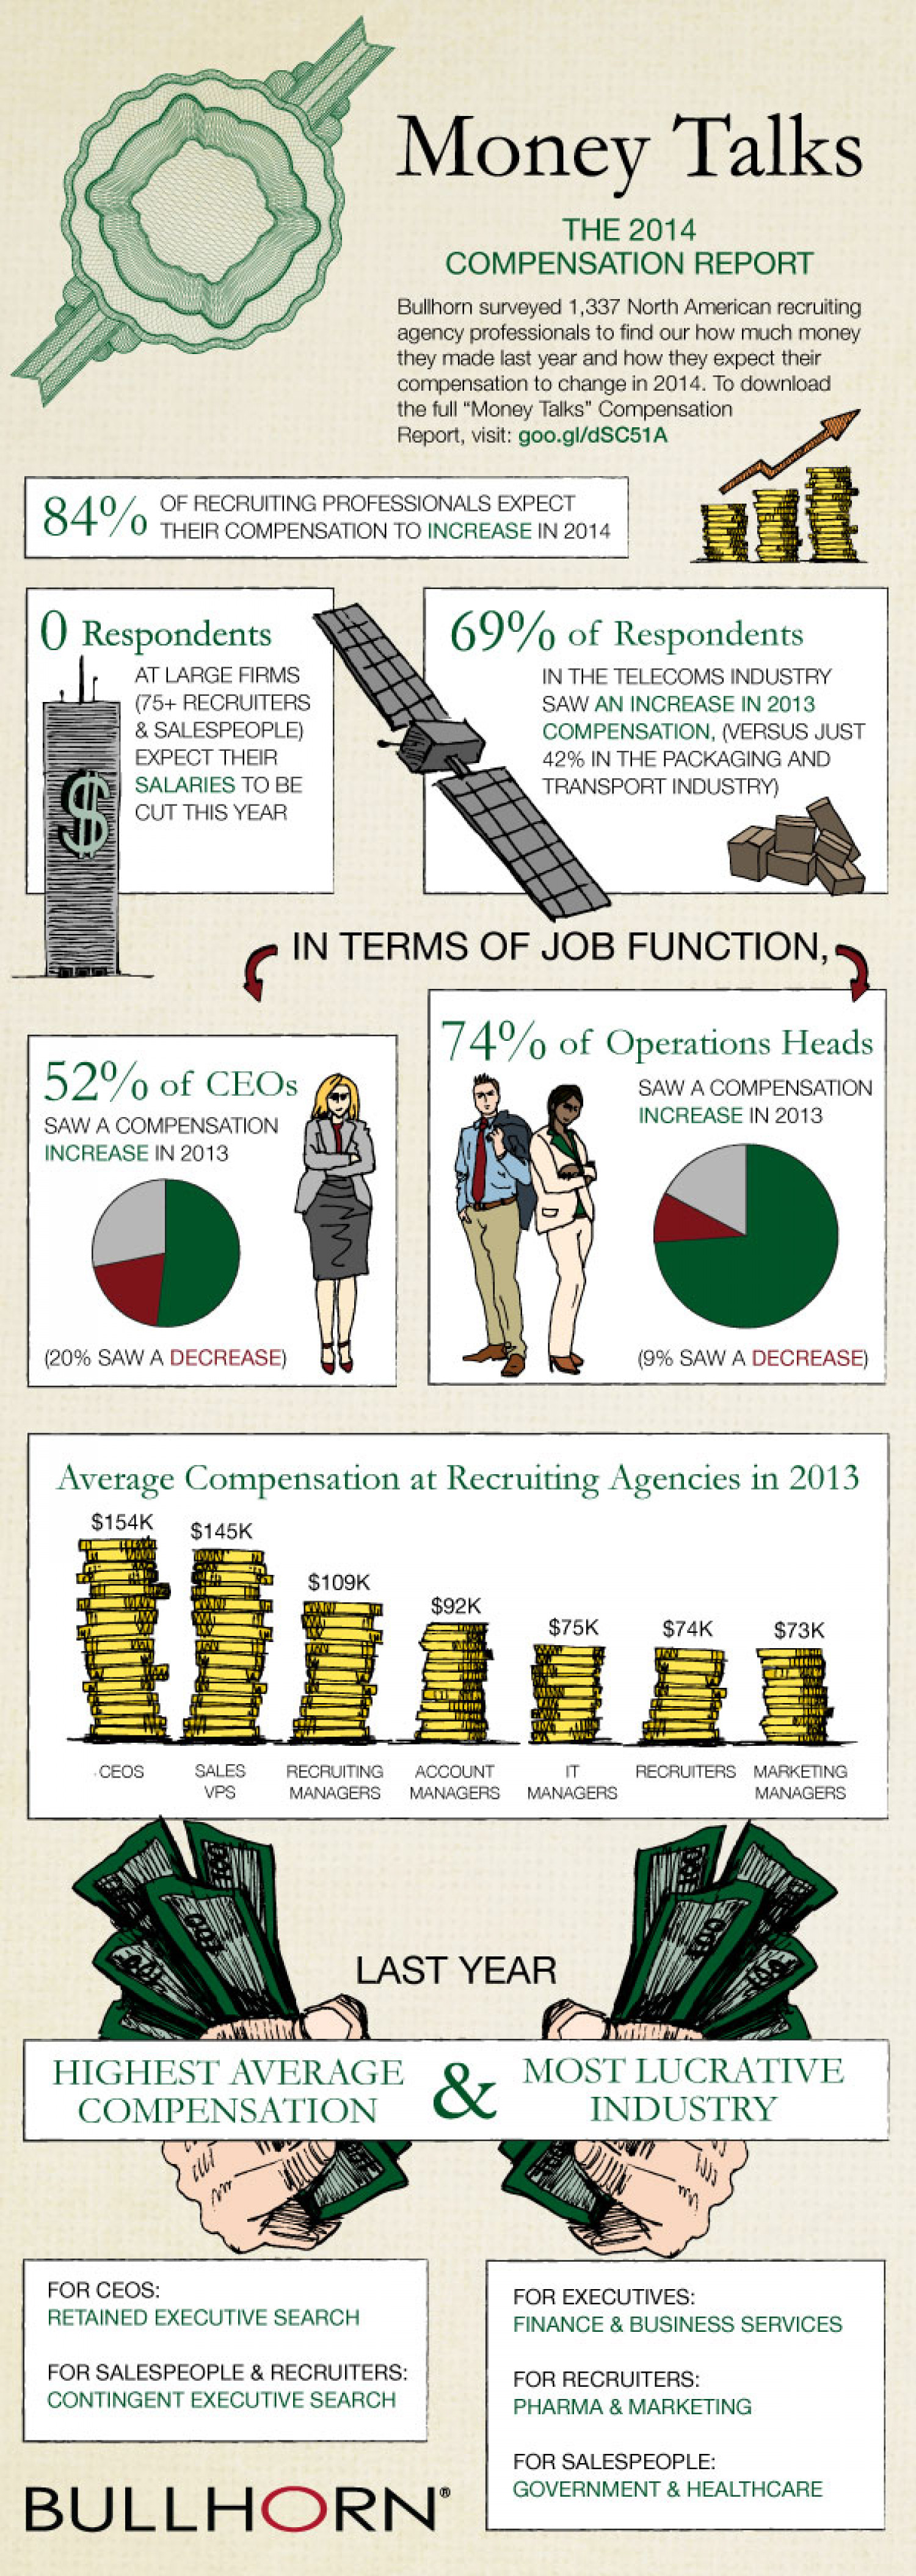 Money Talks: The 2014 Compensation Report Infographic